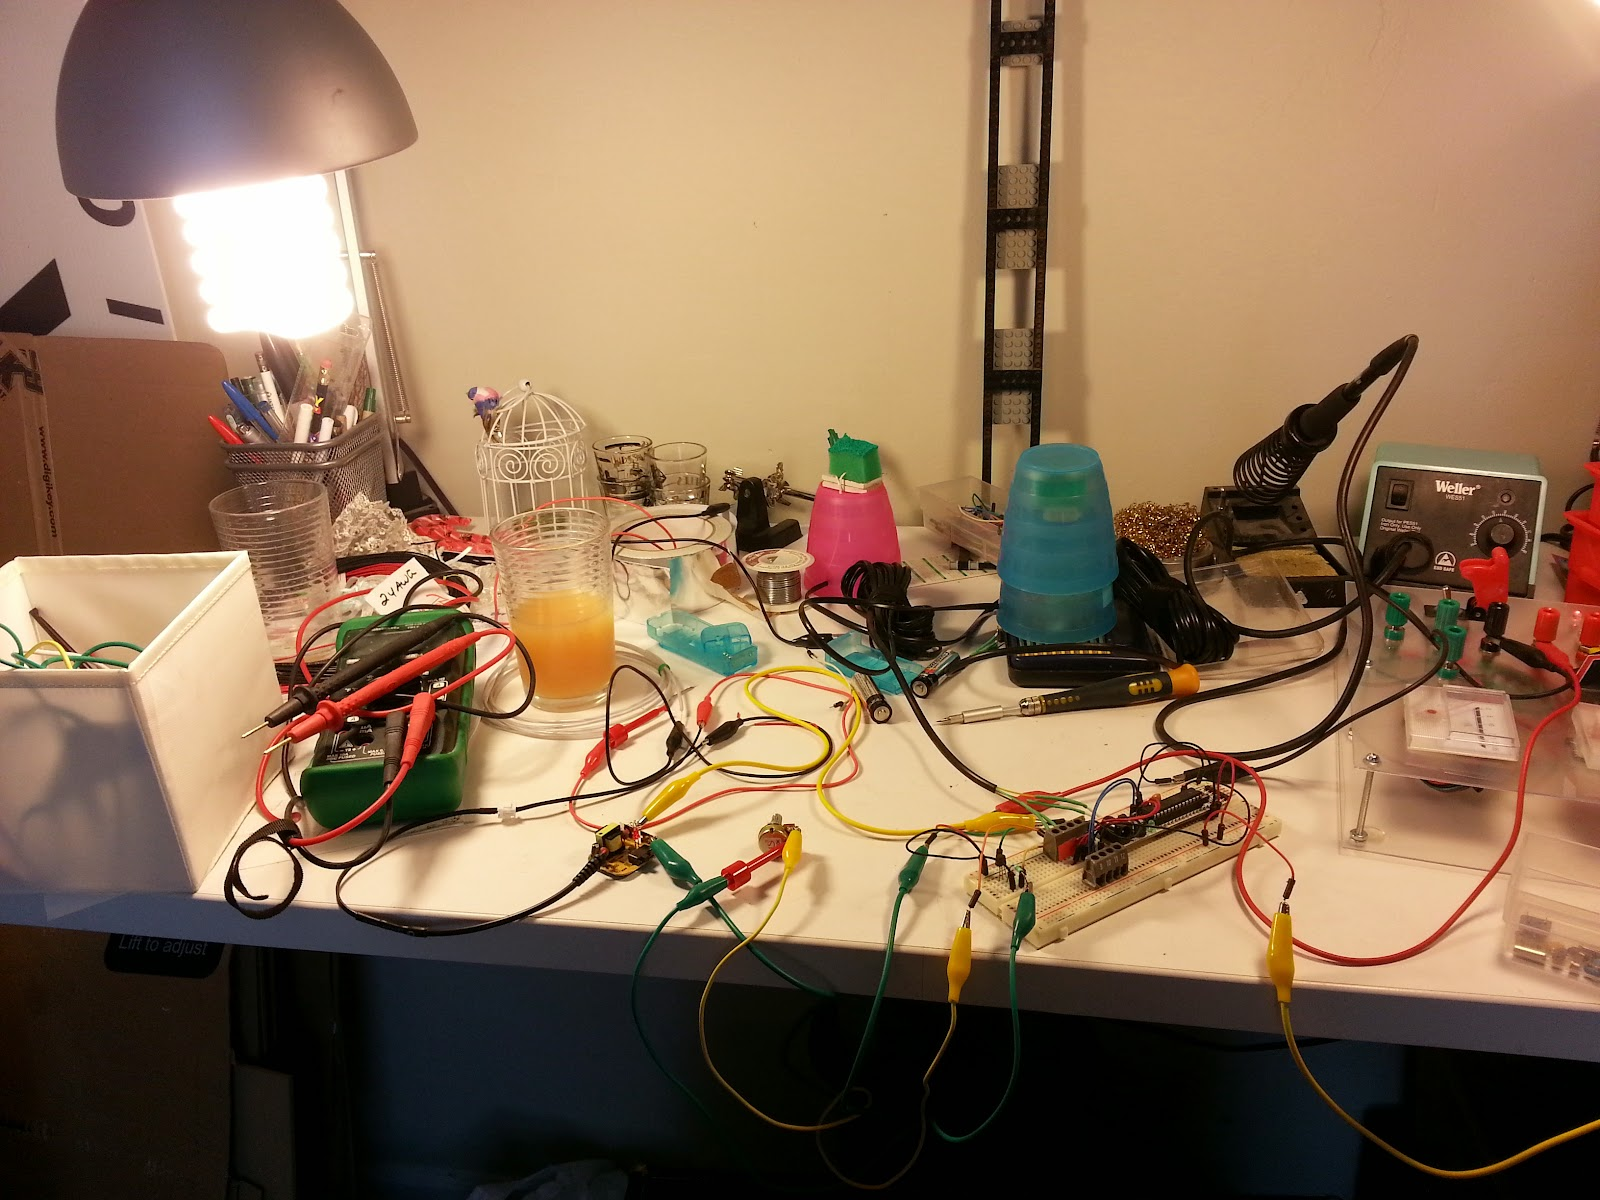 The Deambulatory Matrix Experiments In Dimming El Wire Using Pwm 2013 Wallpapers Quiz Buzzer Circuit Final Setup With Arduino Rbbb Messy Desk Breakfast Juice And All To Supply A Test Signal I Simply Used From My Game Buzzers